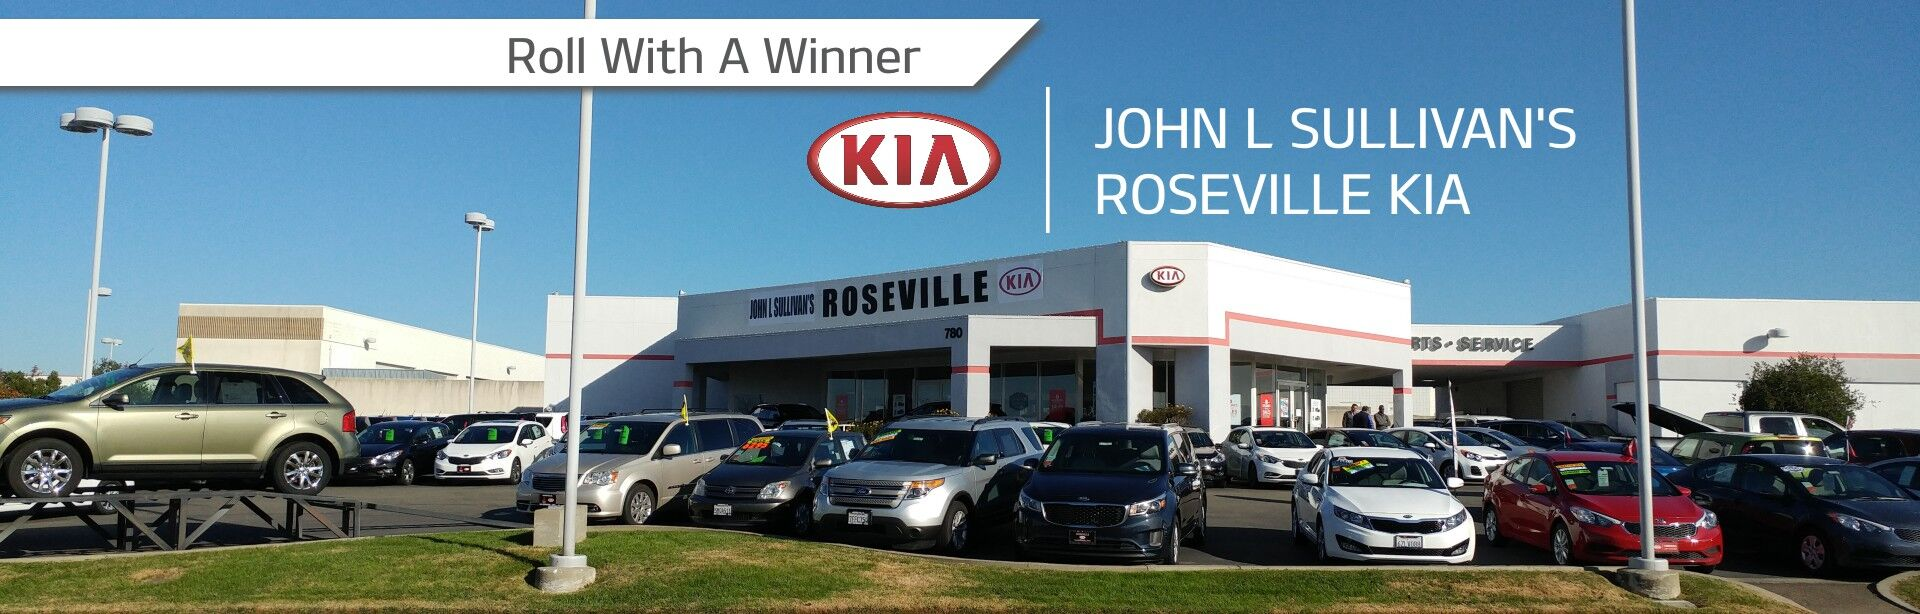 Welcome to John L Sullivan's Roseville Kia